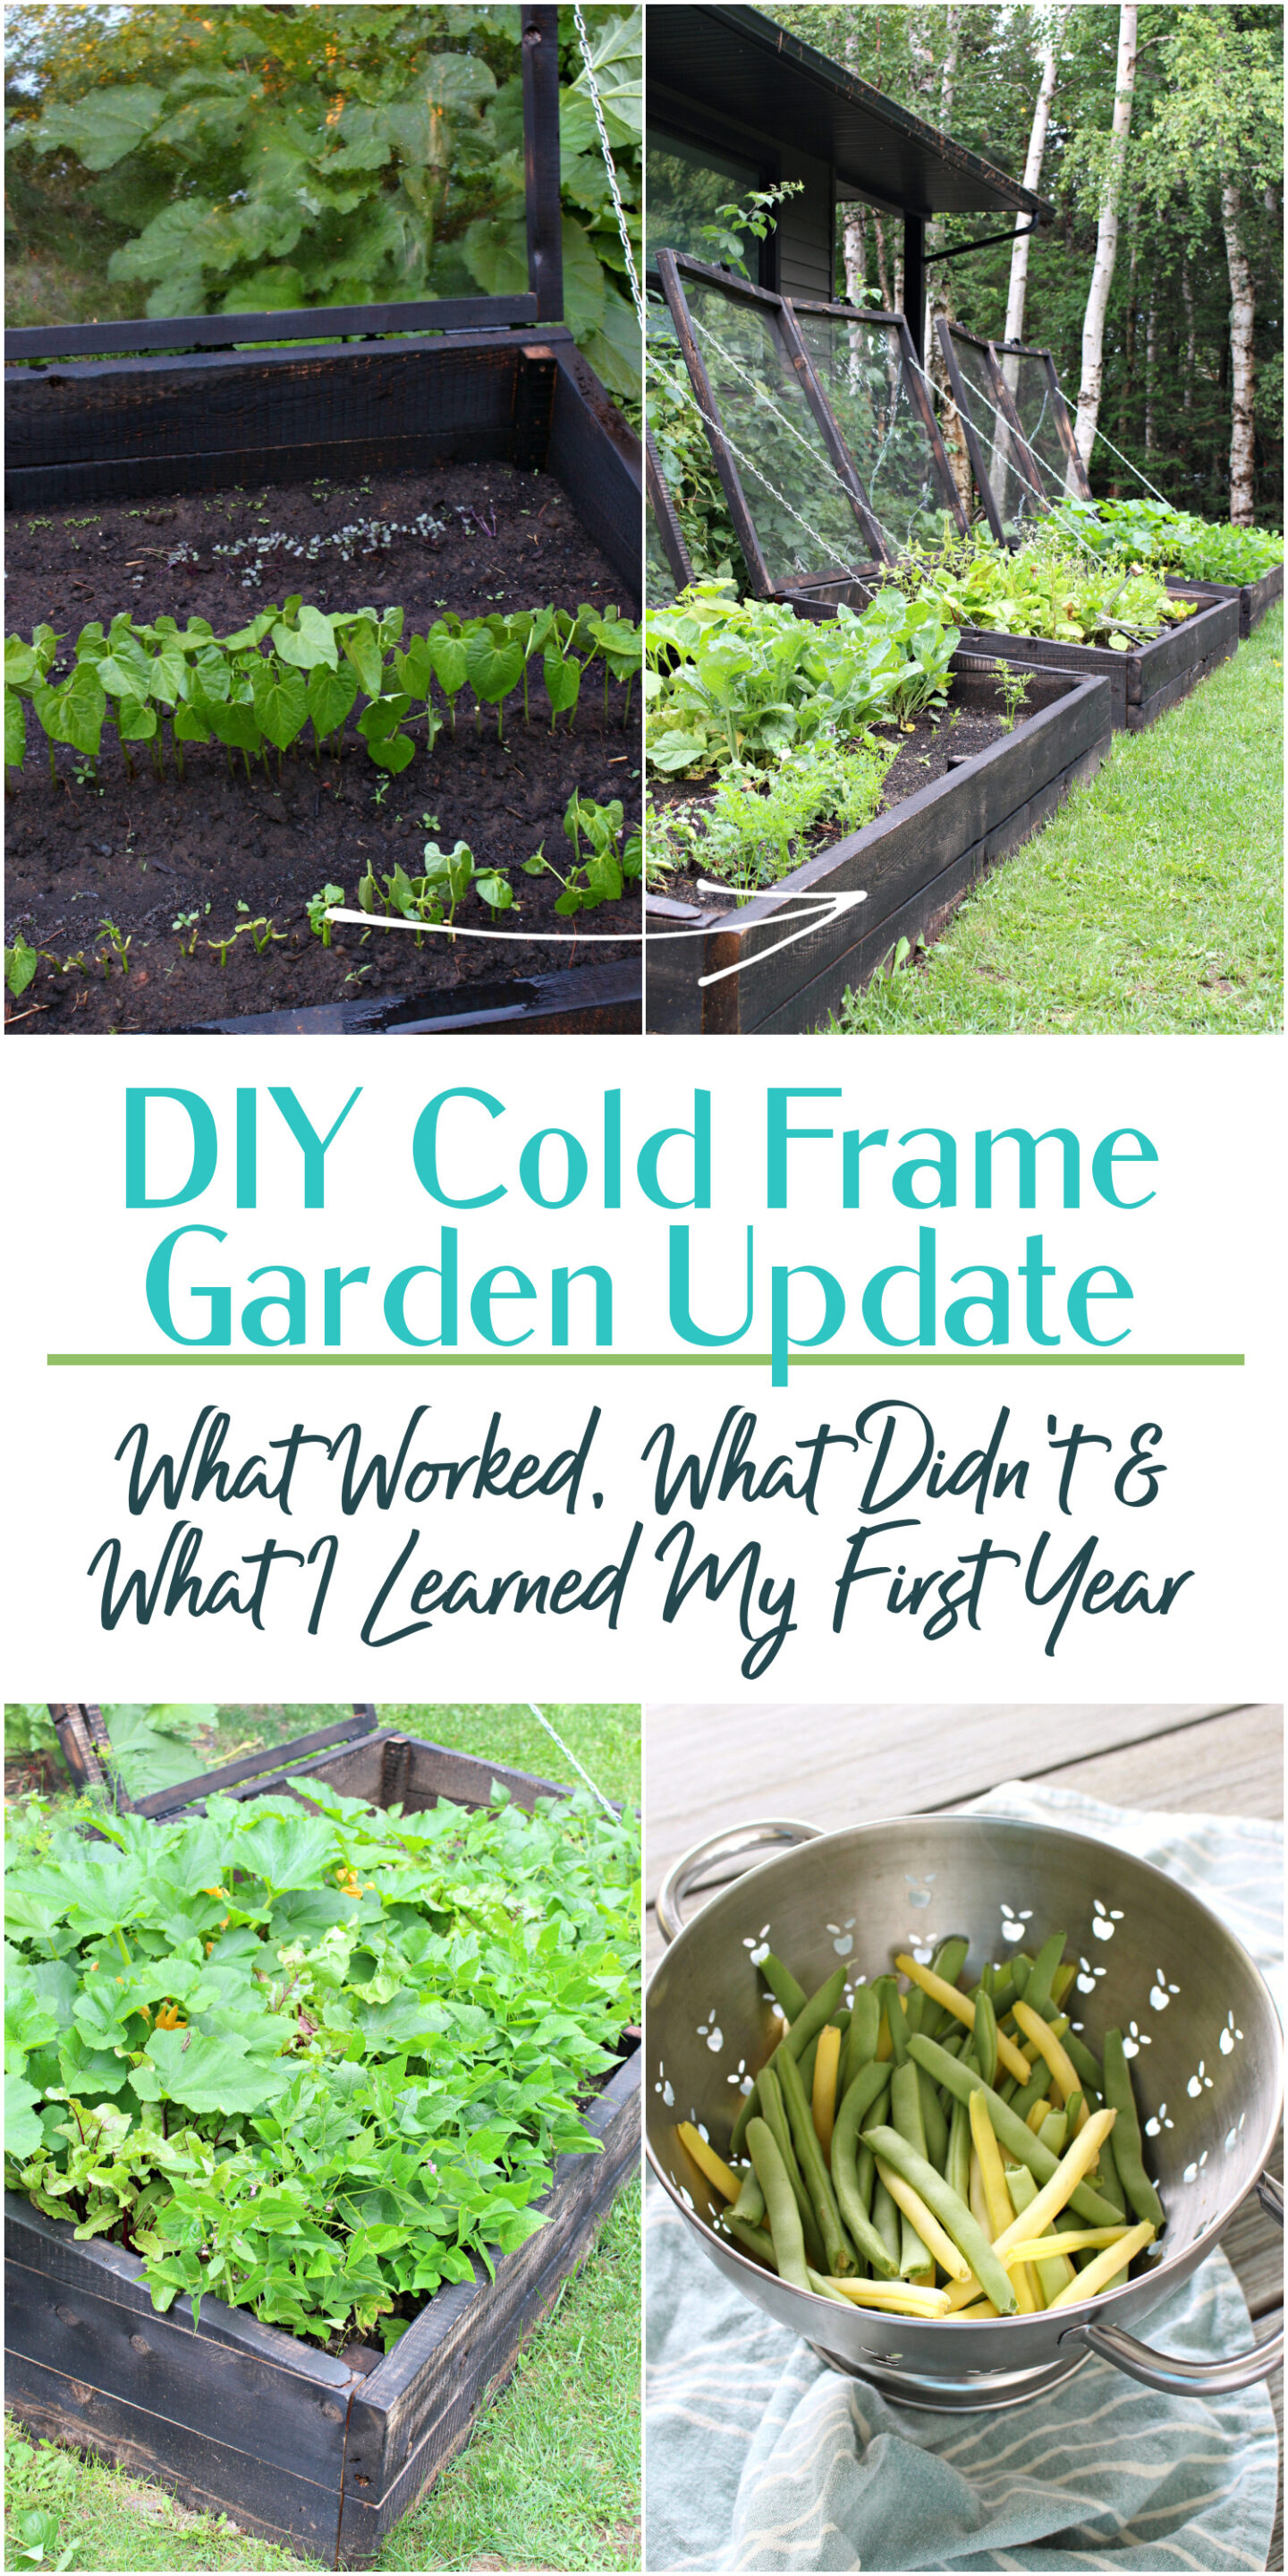 DIY Cold Frame Garden Update: What Worked, What Didn't & What I Learned